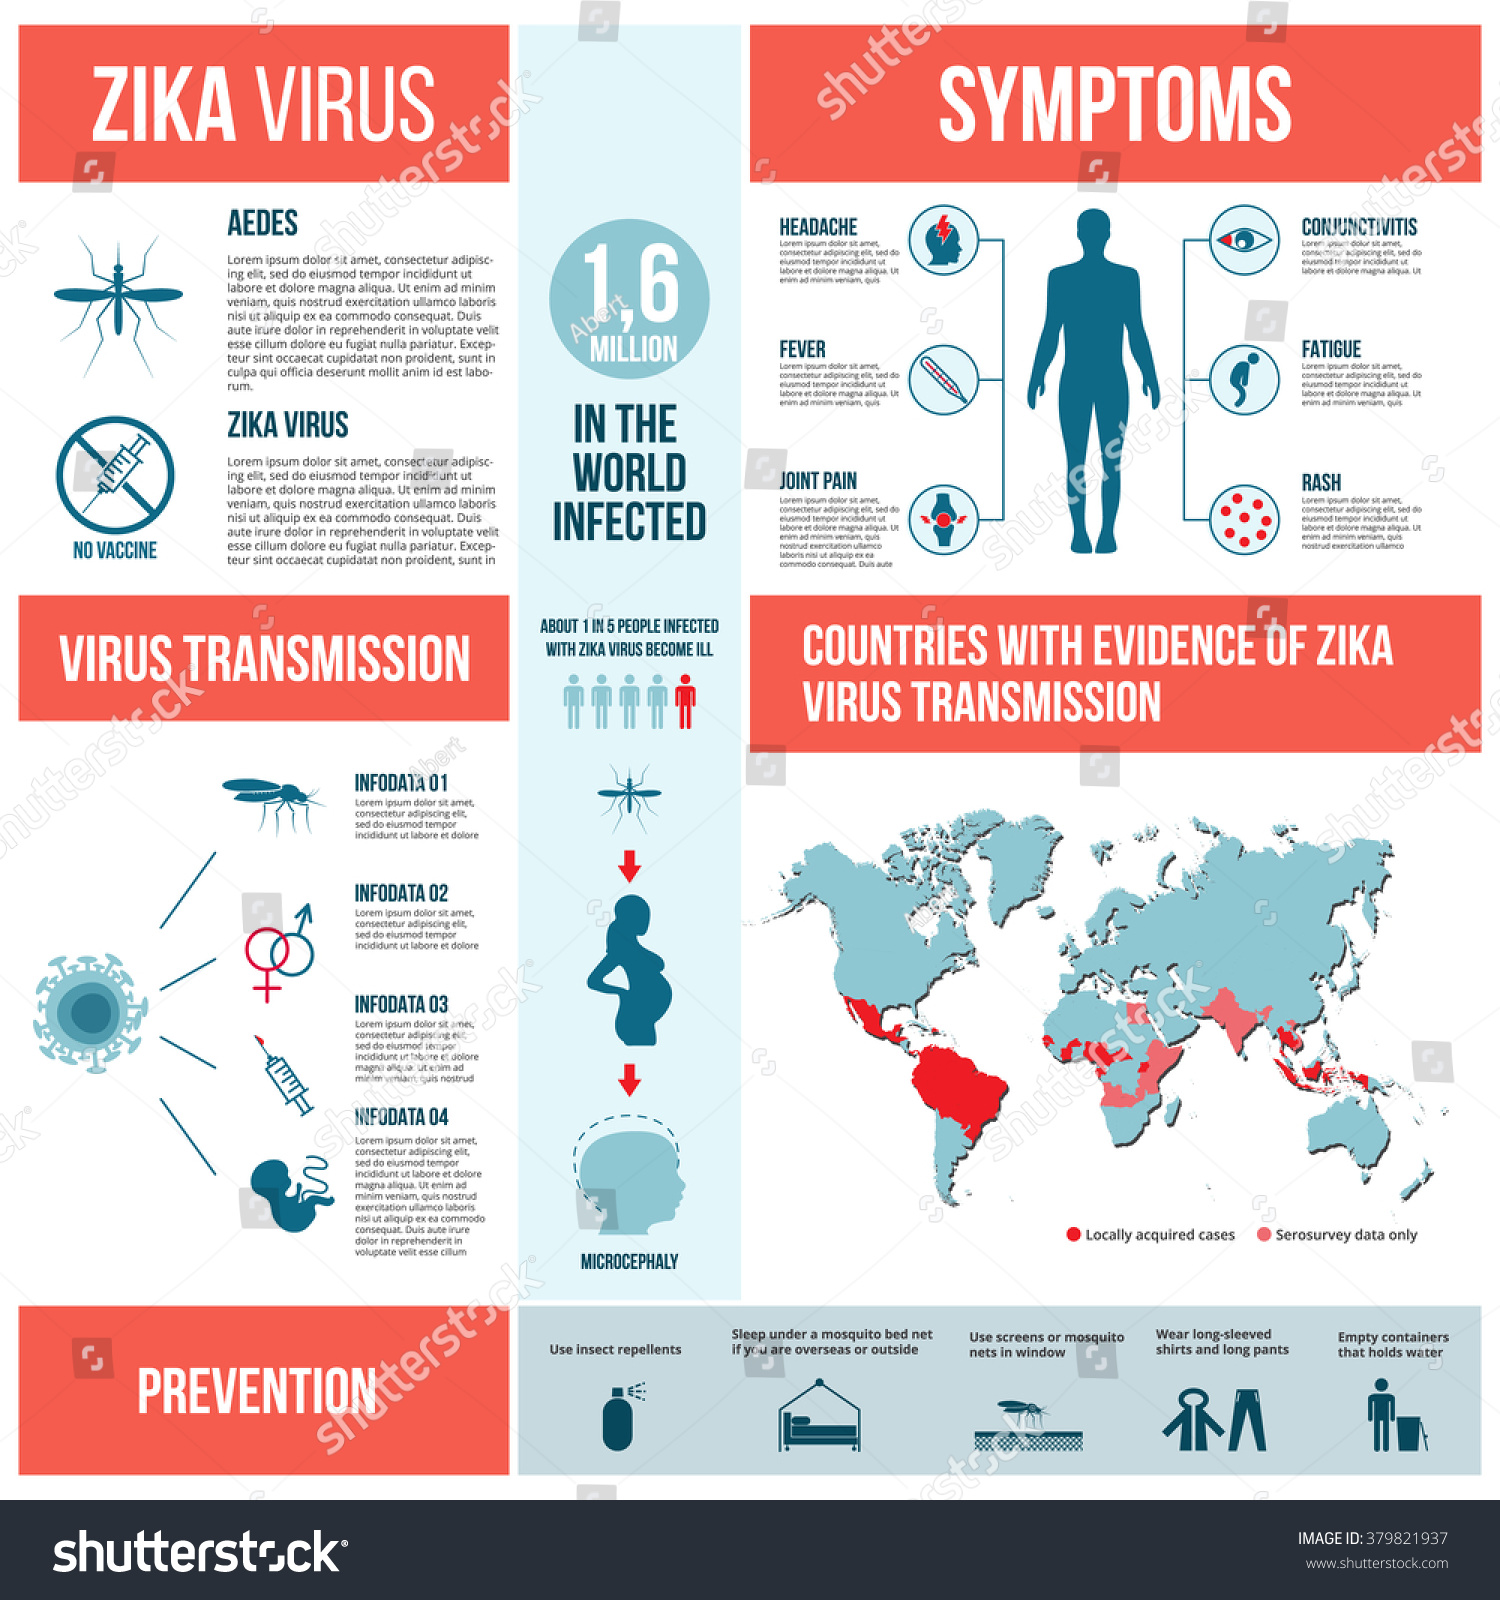 the transmission and prevention of the zika virus There is also a risk of zika virus transmission through sexual contact visit the  interim guidance for preventing sexual transmission of zika virus page to see  the.